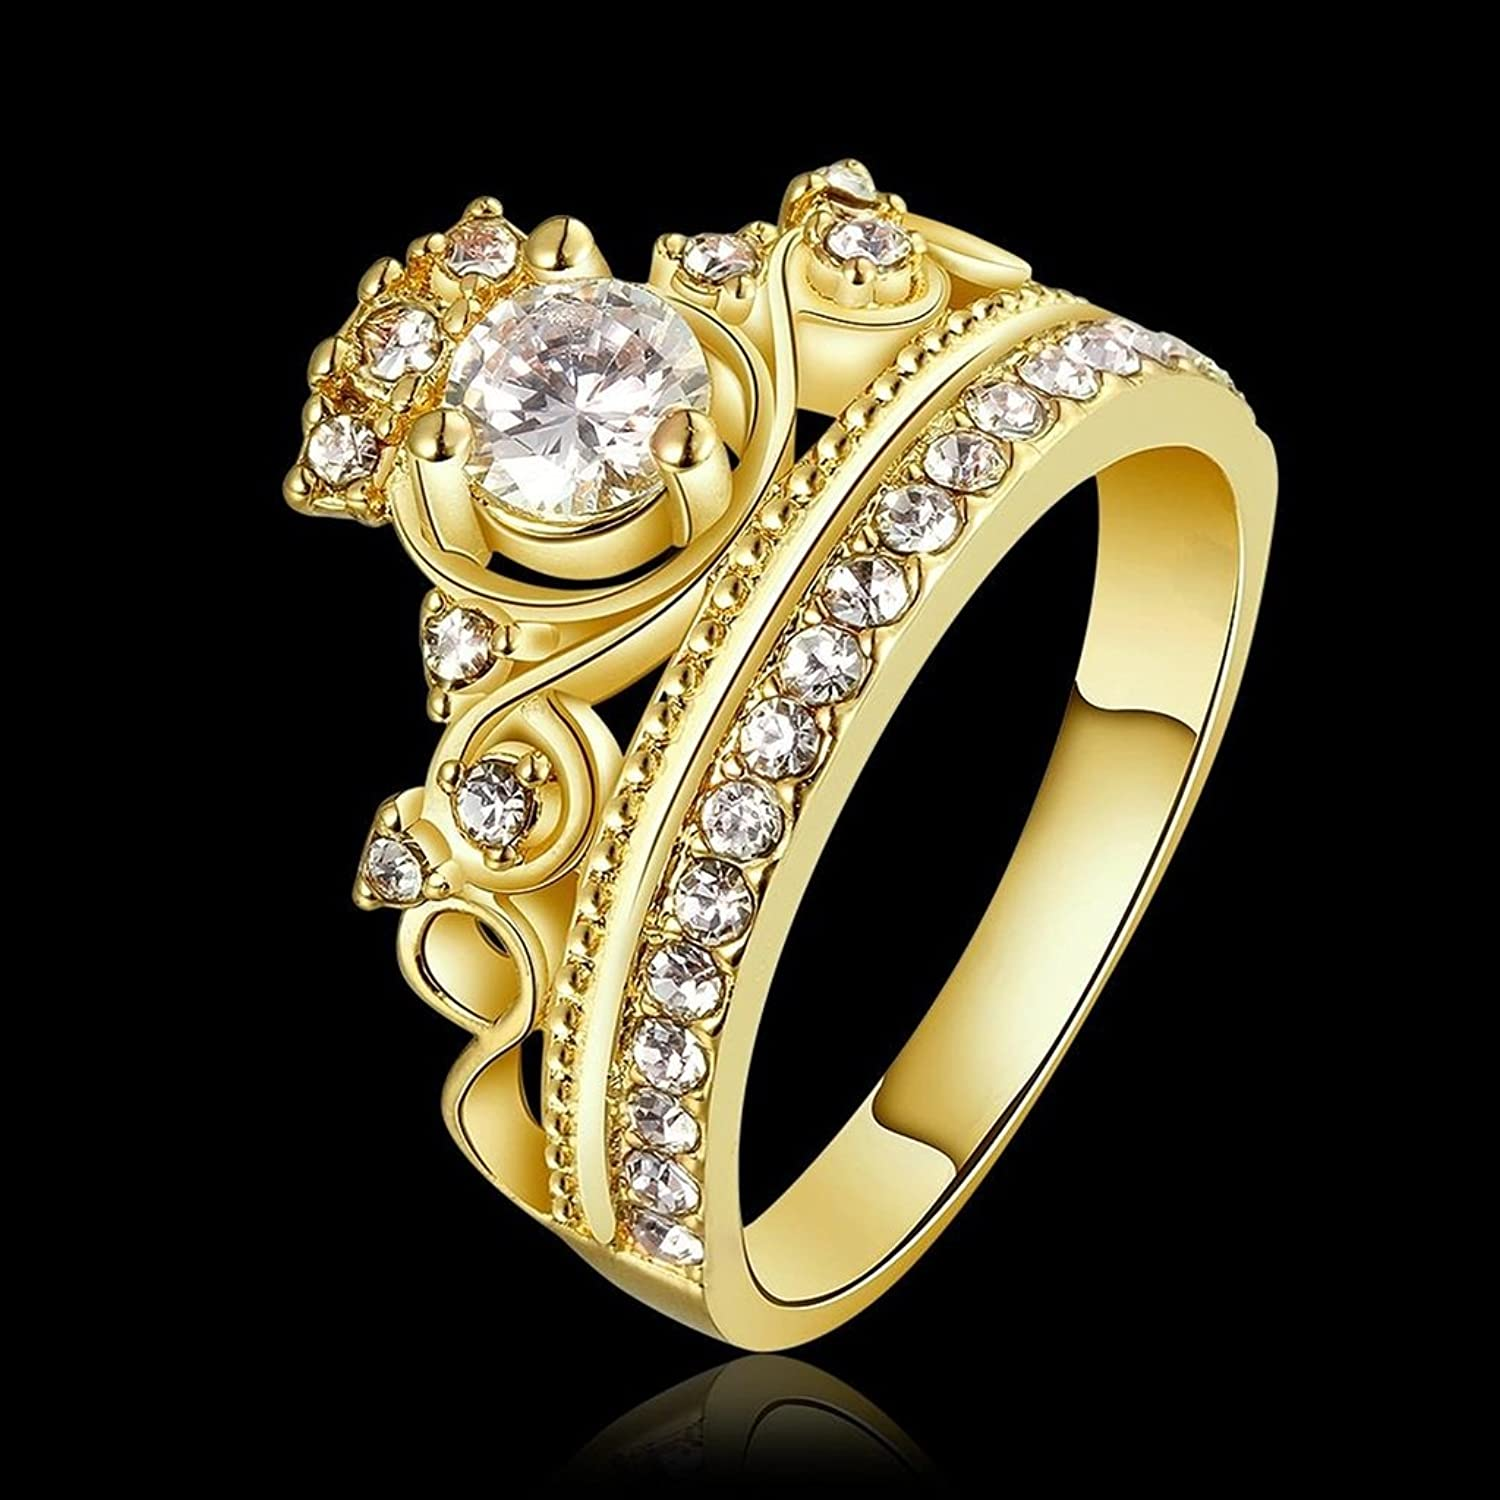 Amazoncom Moandy Jewelry Rings 18K Gold Plated Cubic Zirconia